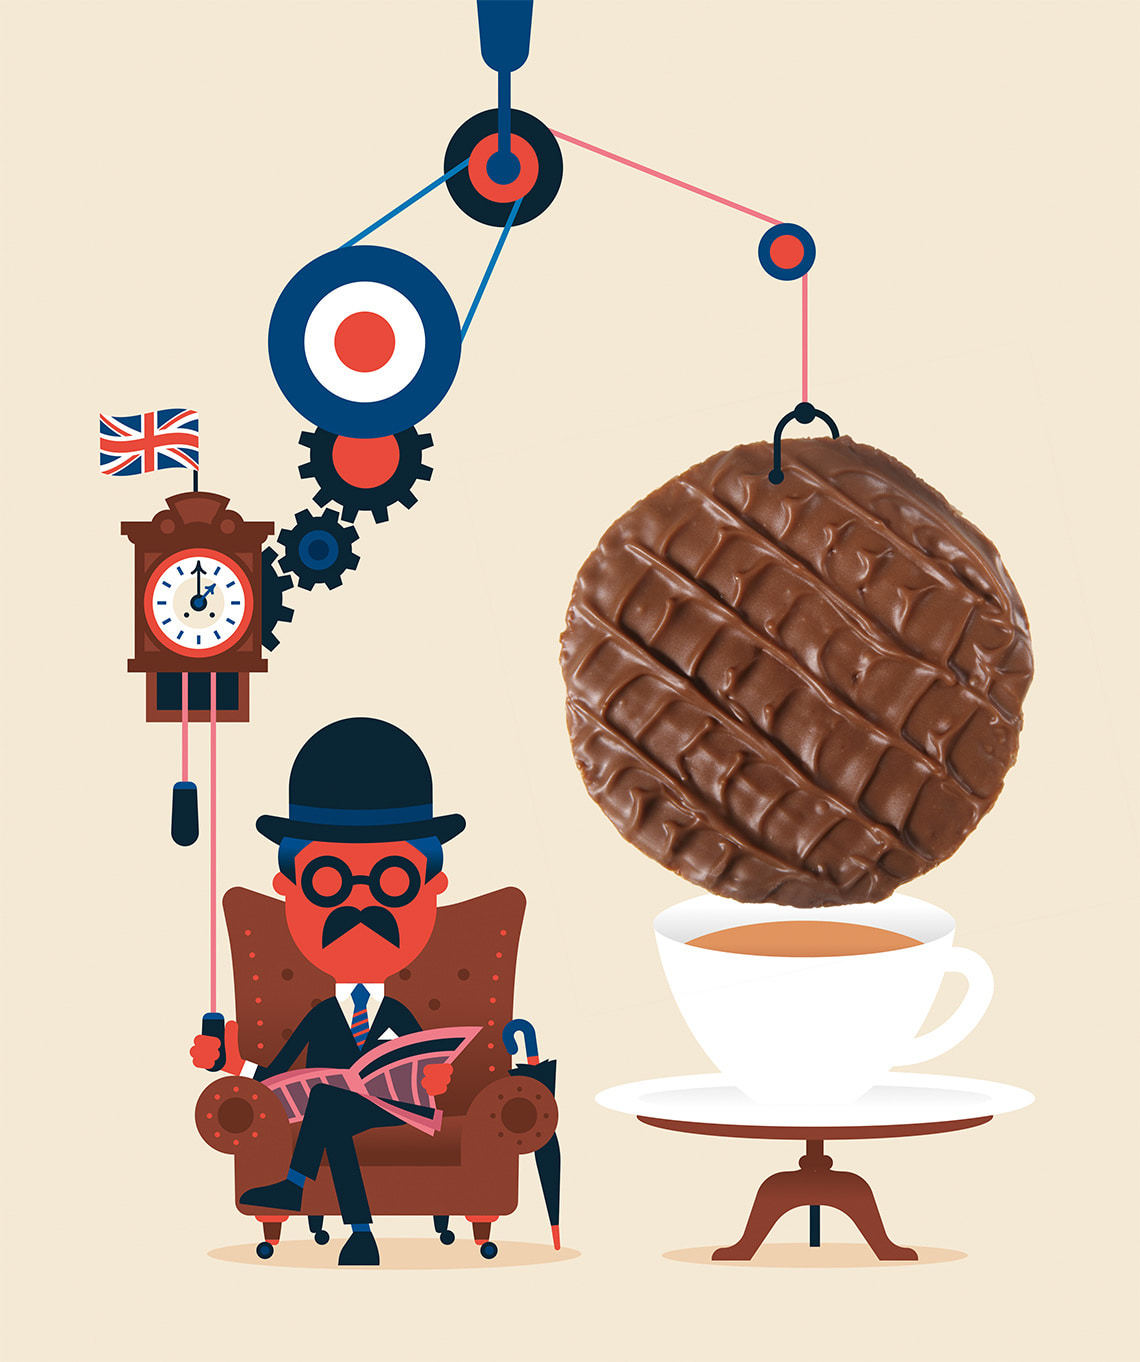 The History of the Chocolate Biscuit